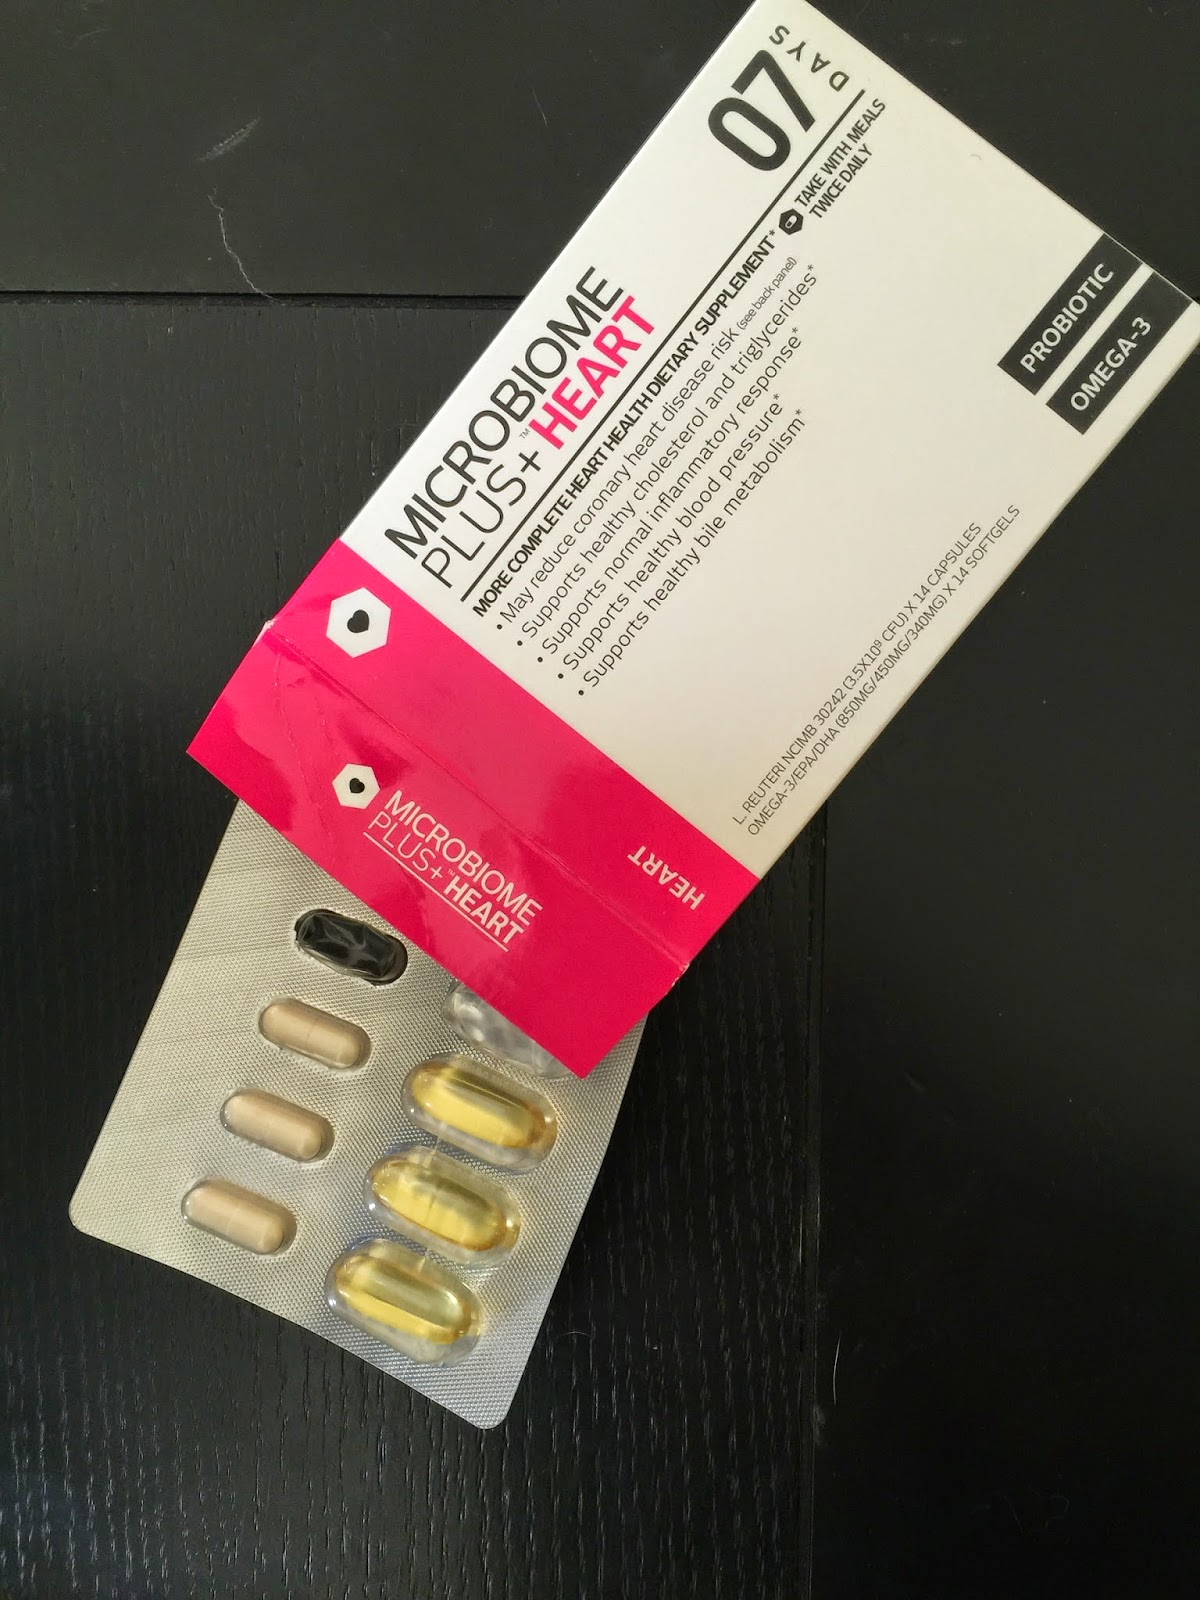 giveaway: win microbiome plus and heart supplements month supply for better heart health